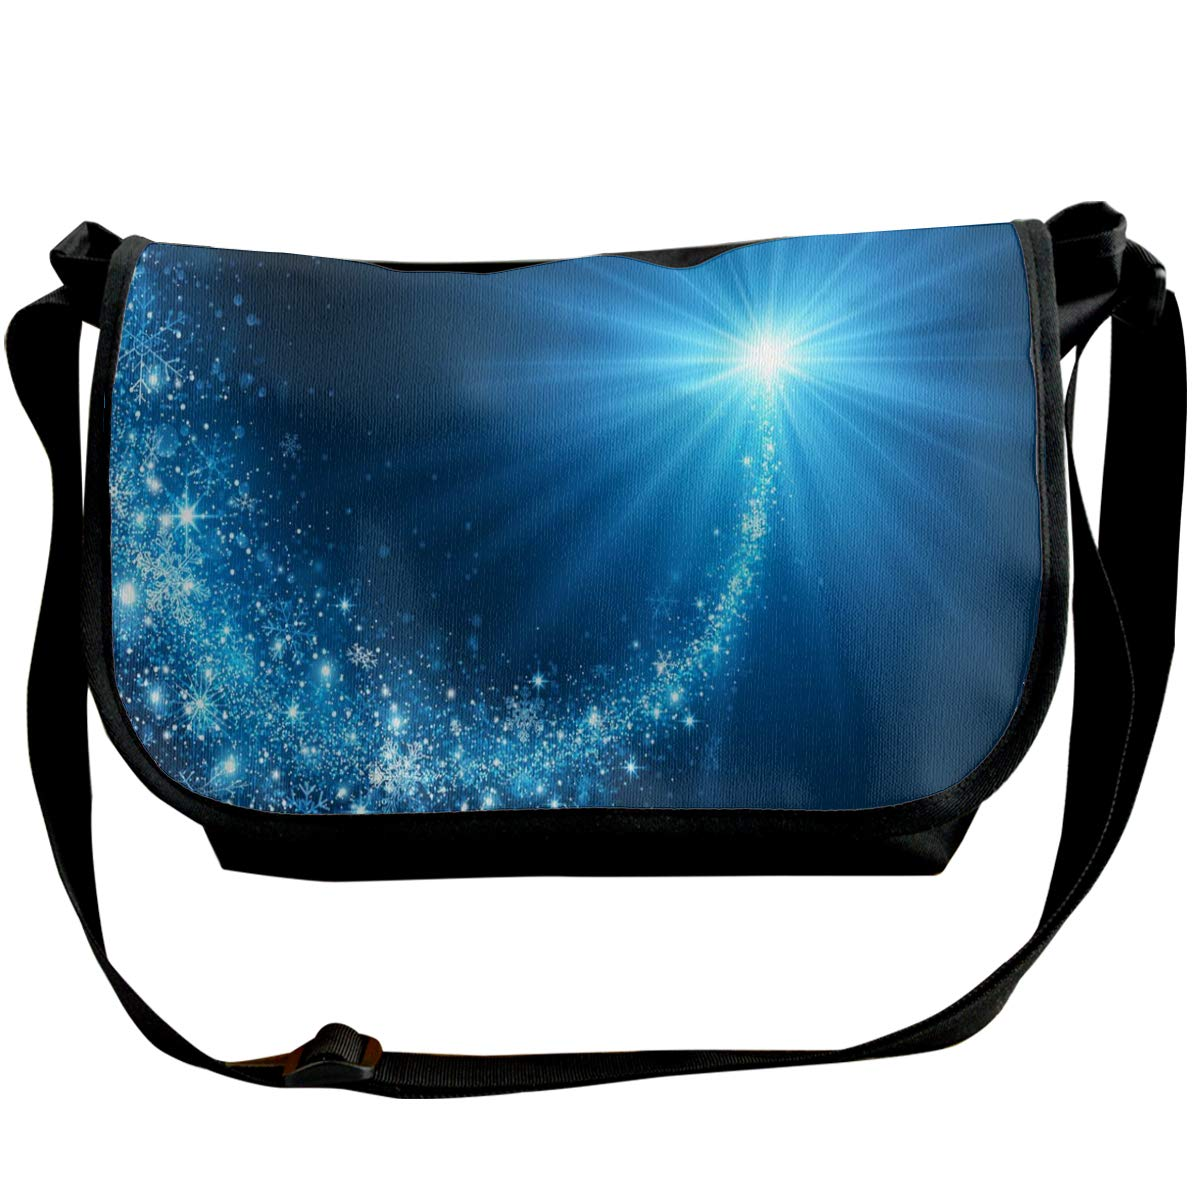 Taslilye Christmas Star Vector Image Customized Wide Crossbody Shoulder Bag For Men And Women For Daily Work Or Travel